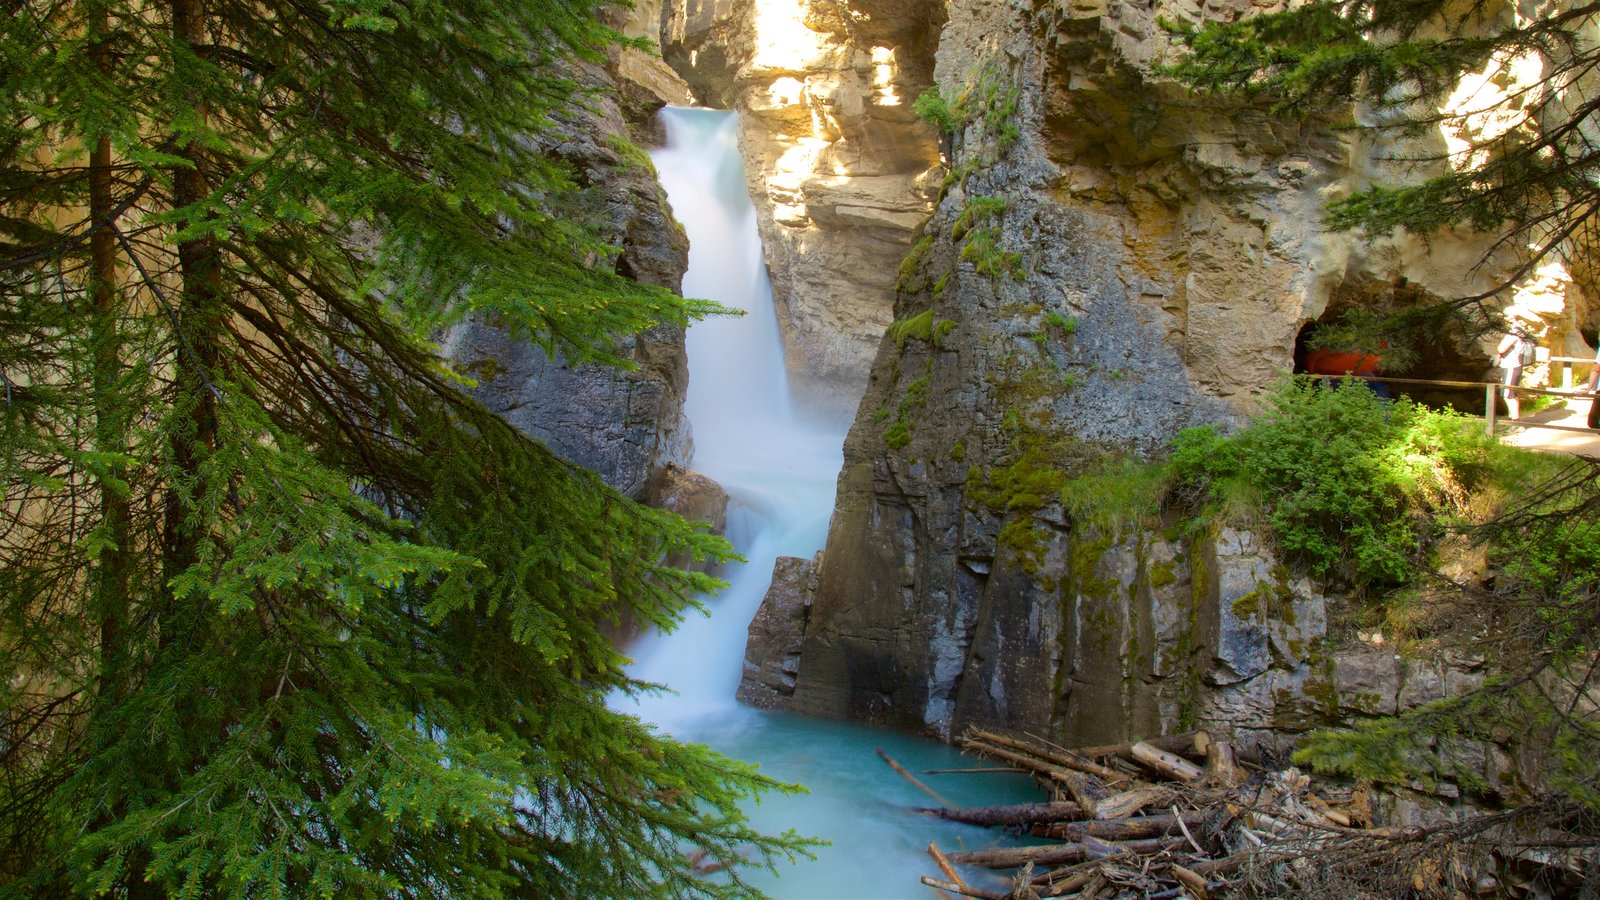 Johnston Canyon showing a river or creek, a cascade and a gorge or canyon